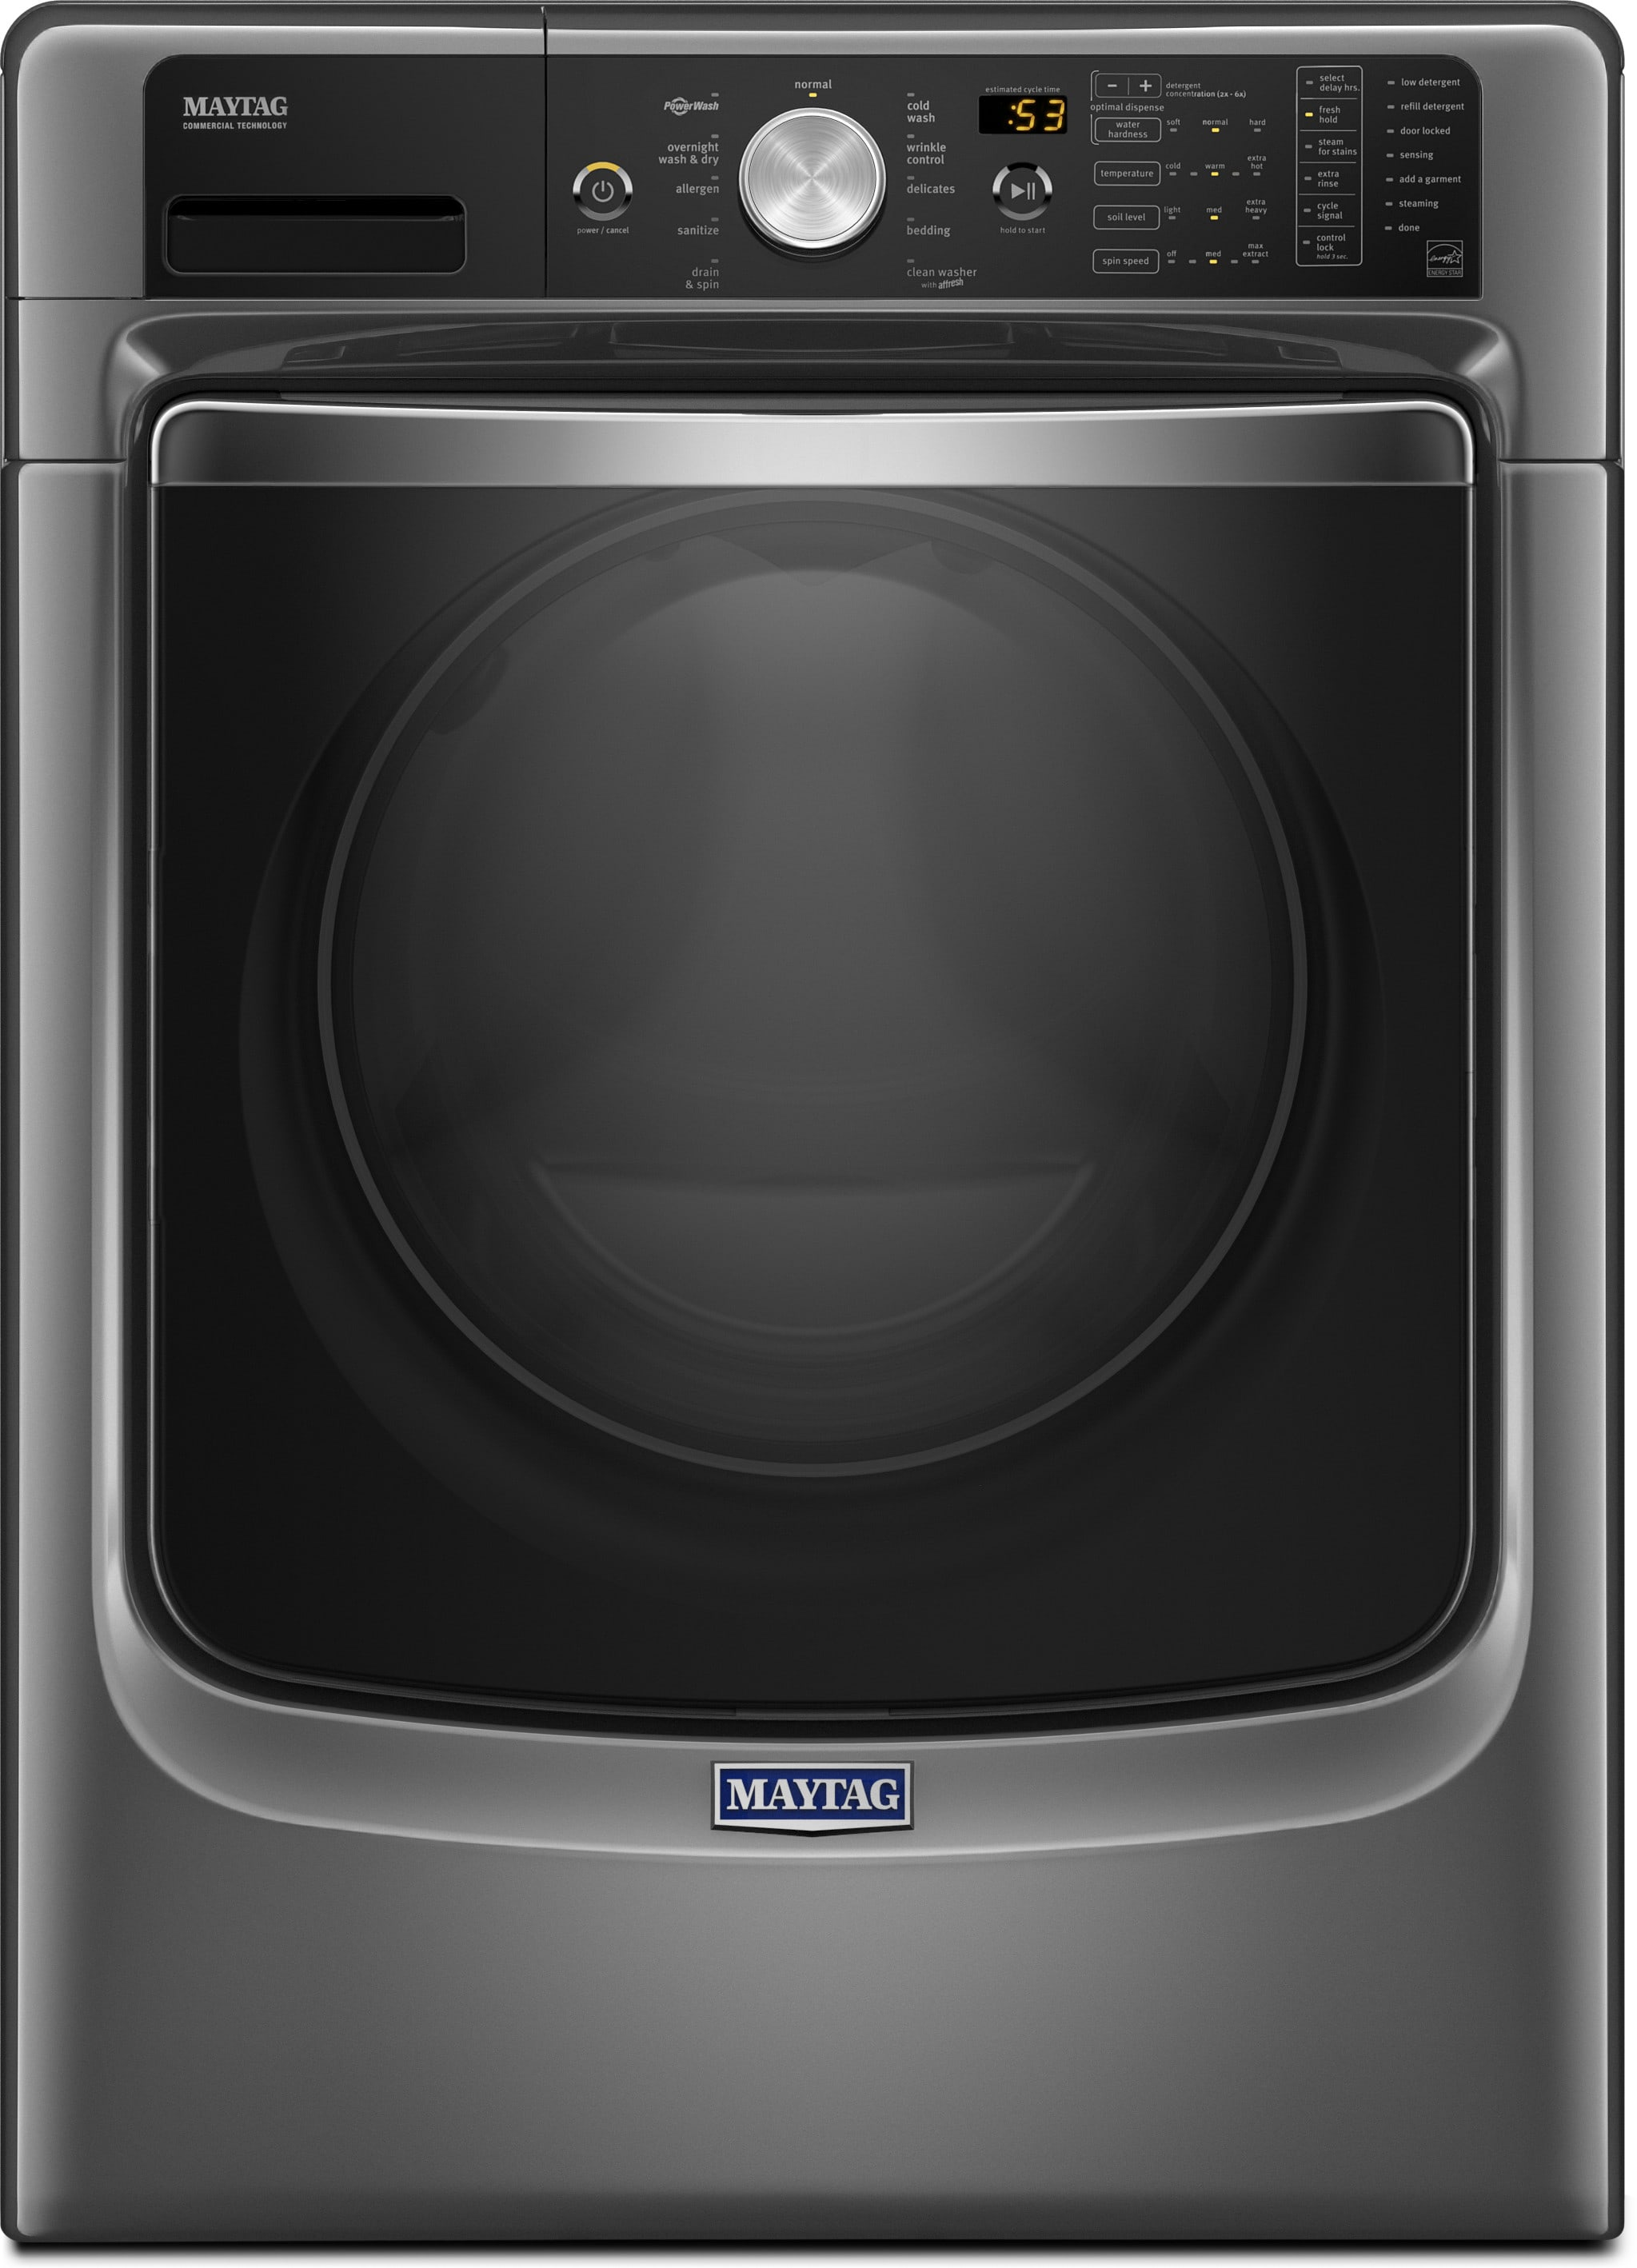 Maytag Mhw8200fc 27 Inch 4 6 Cu Ft Front Load Washer